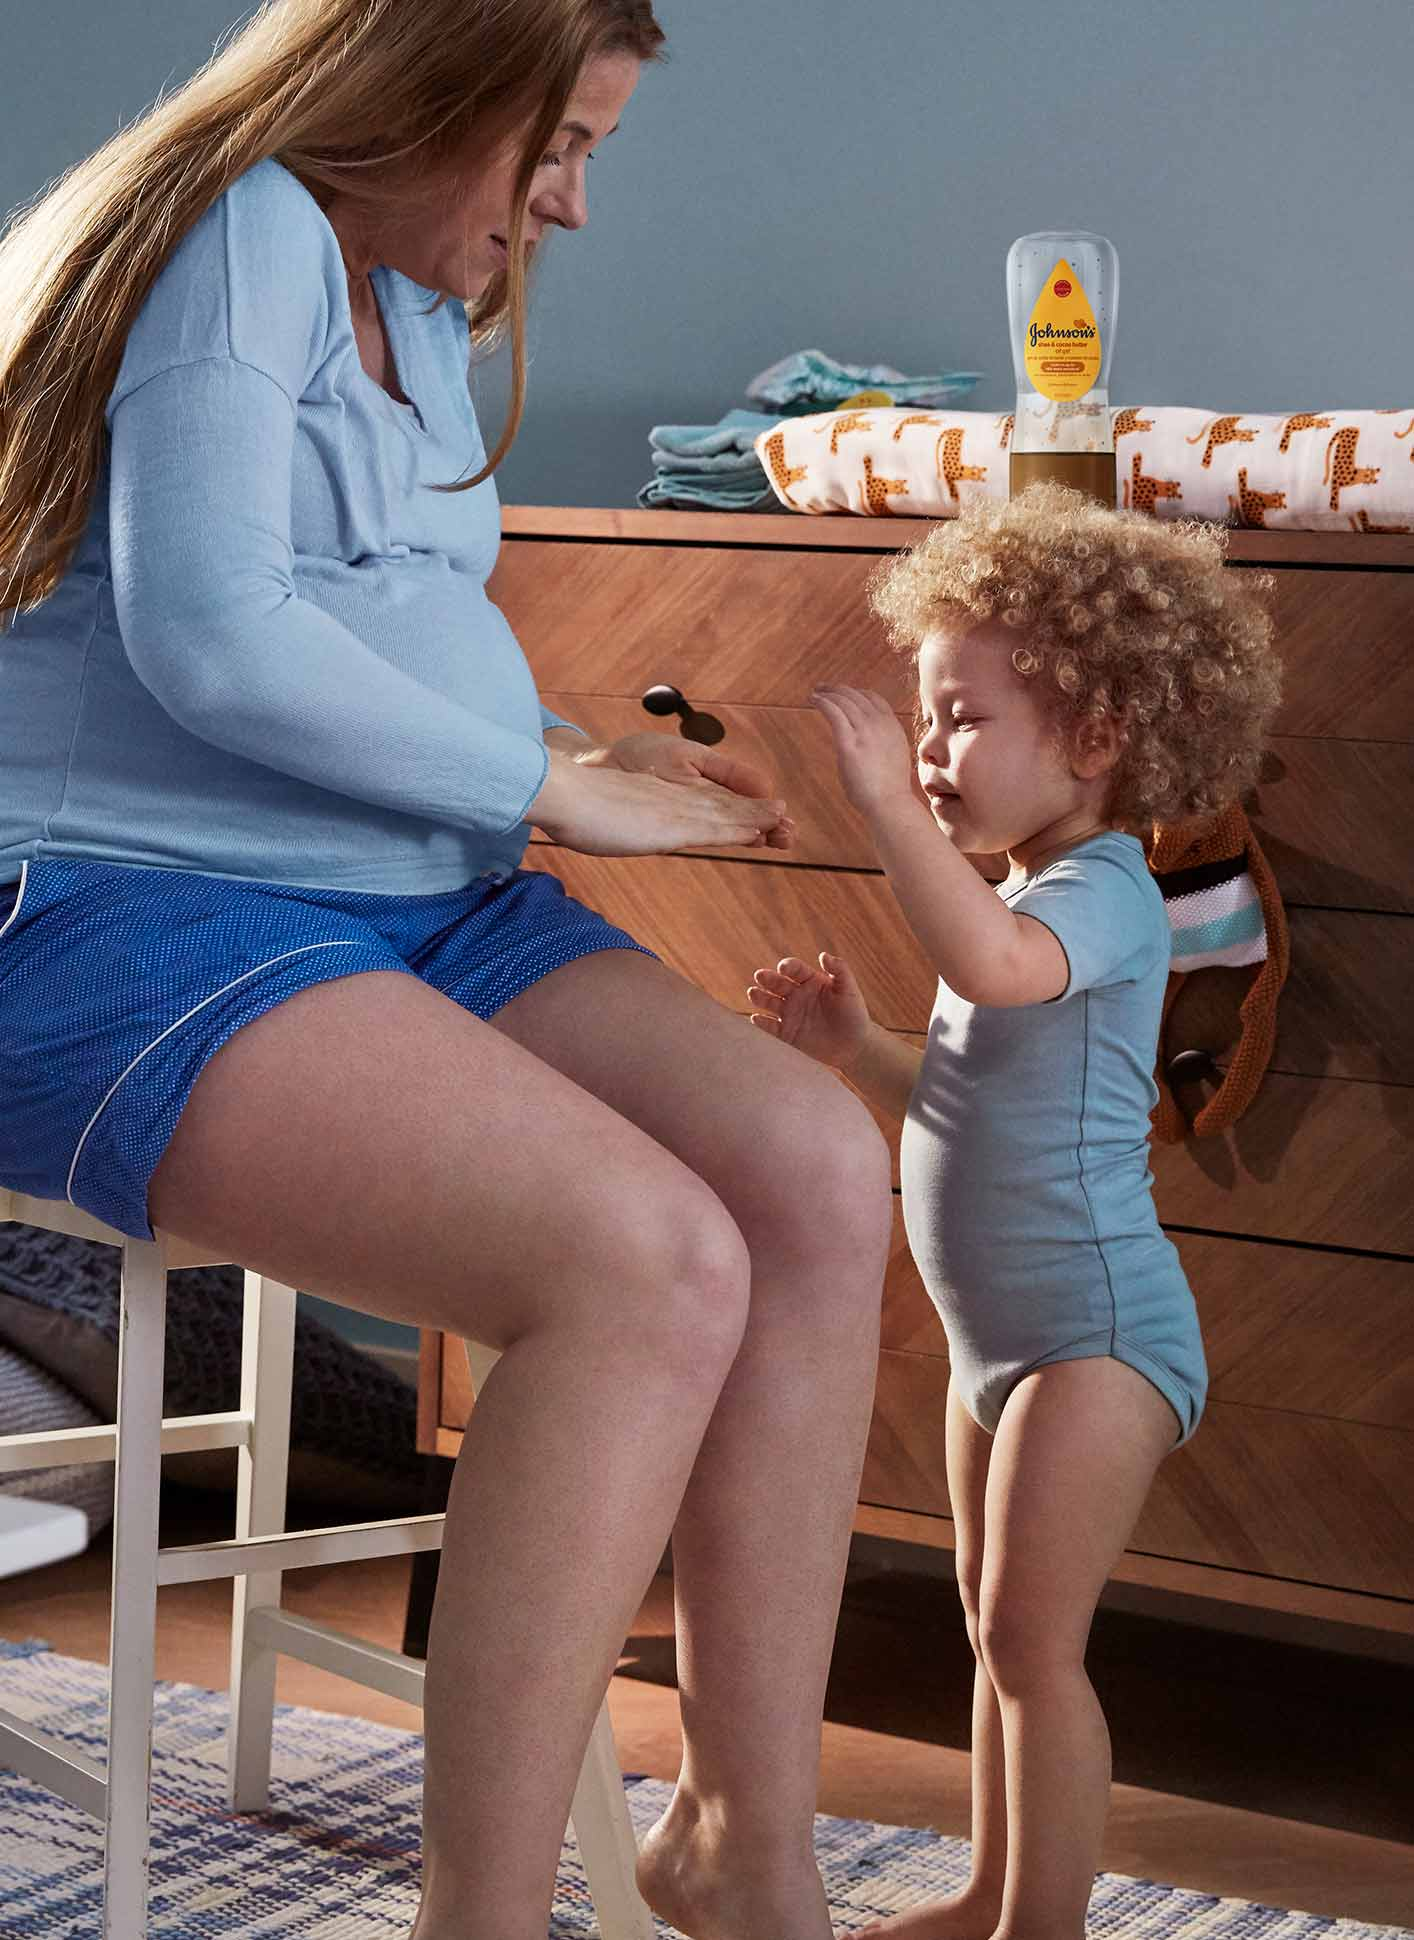 woman applying baby oil into legs